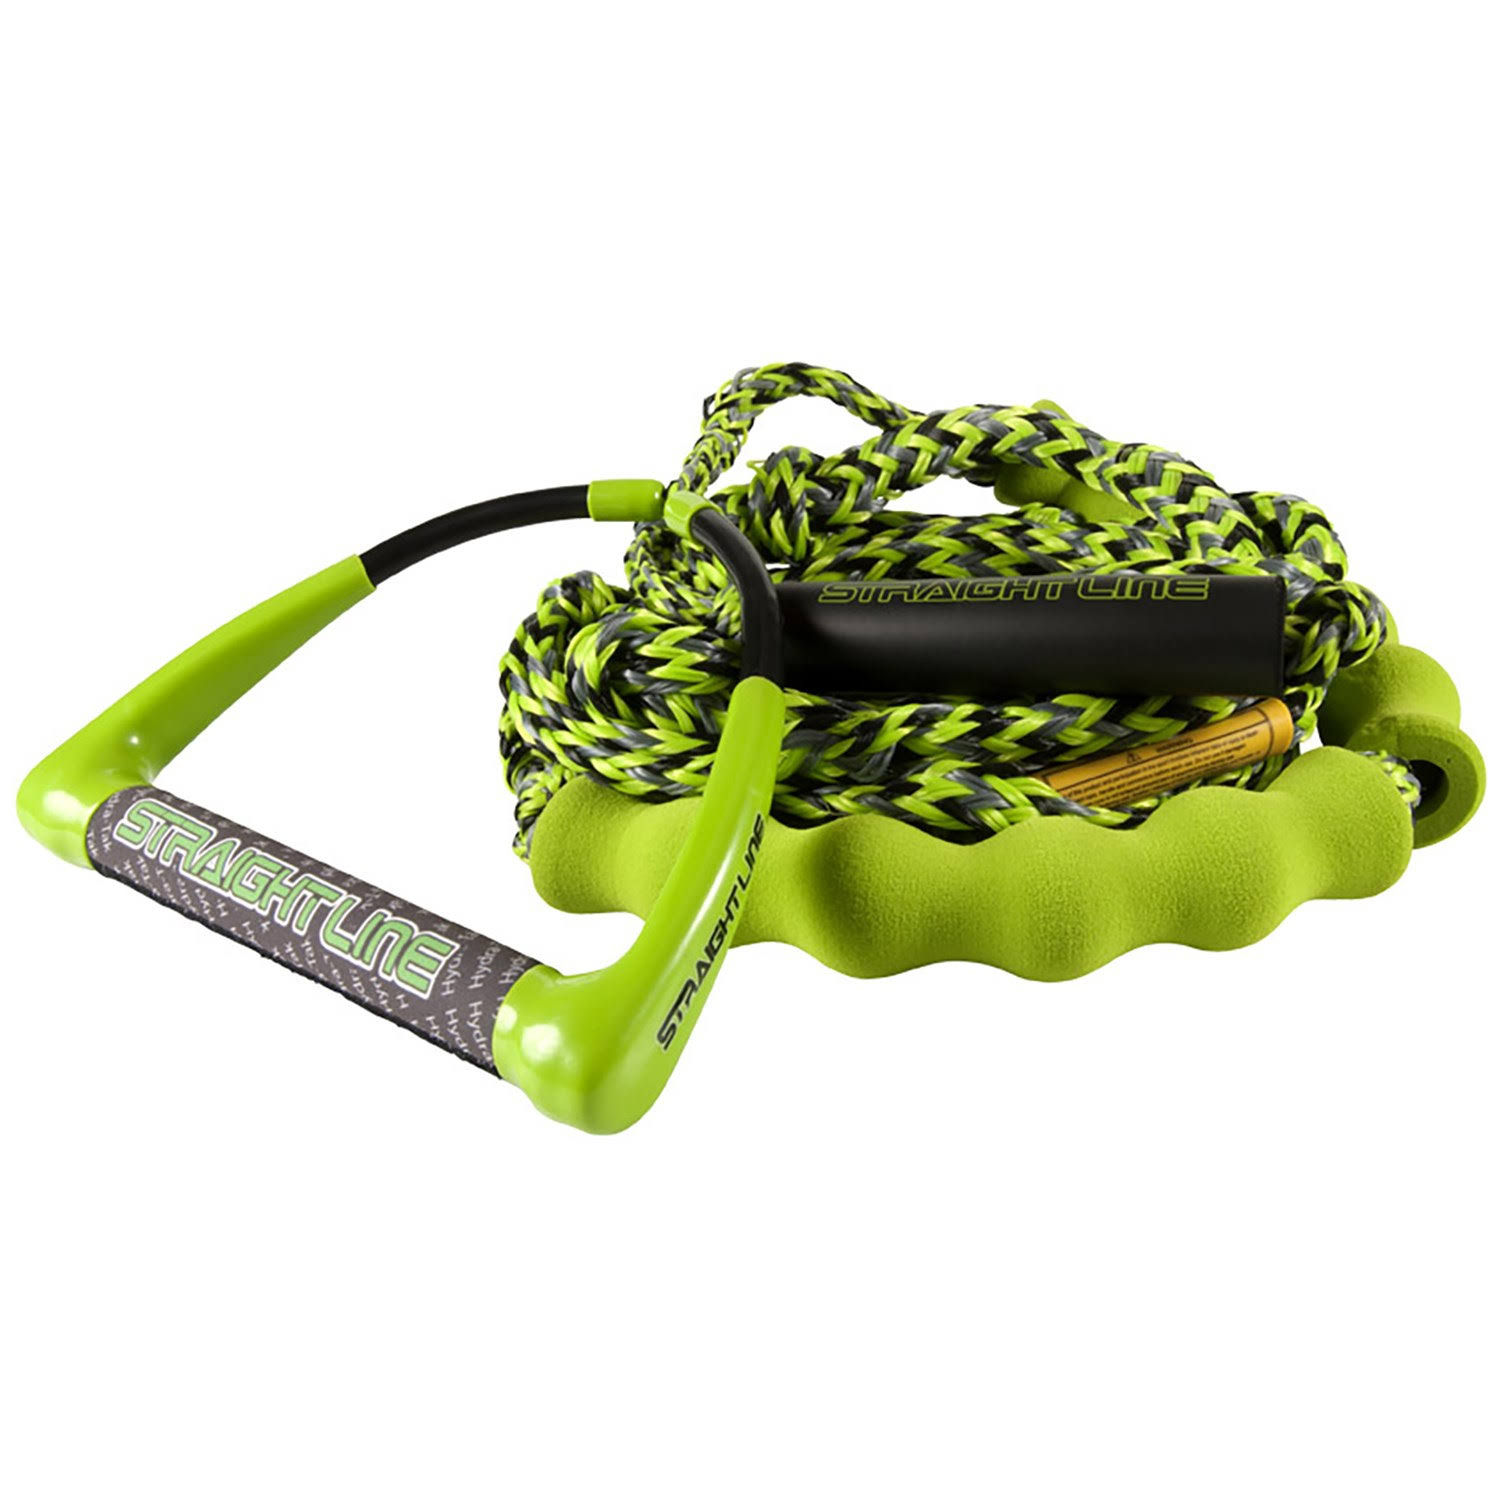 Straight Line Hydratak 10 Surf Rope 2020 in Green